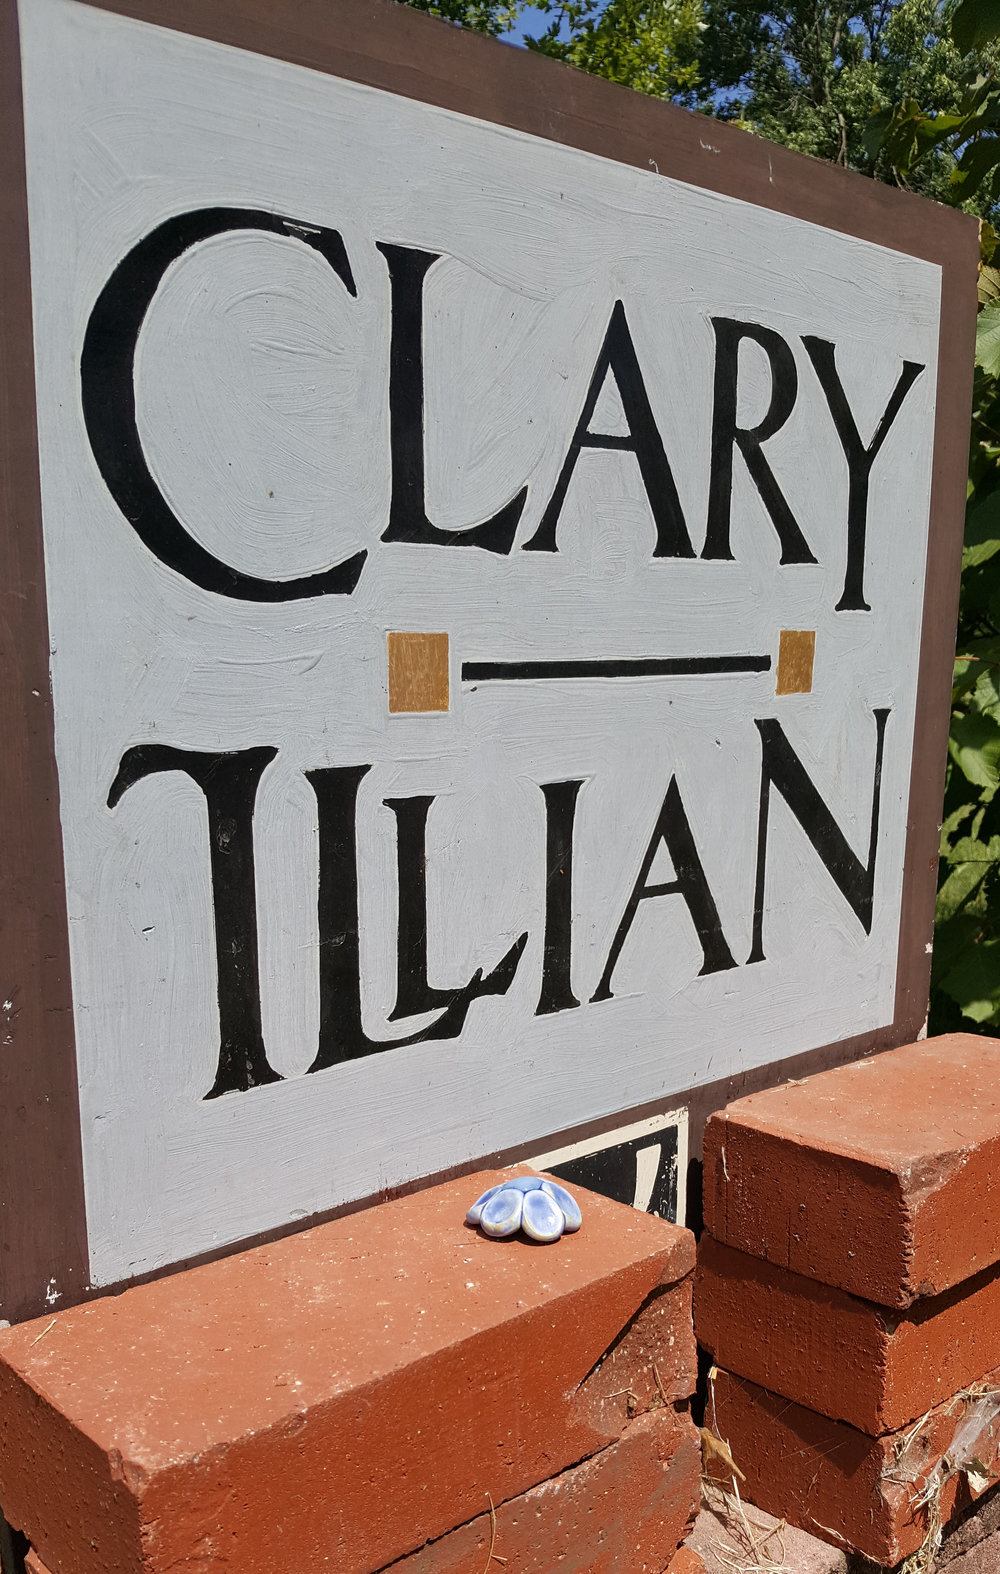 We got to visit  Clary Illian 's studio and home. I was 100% a total pottery fangirl.